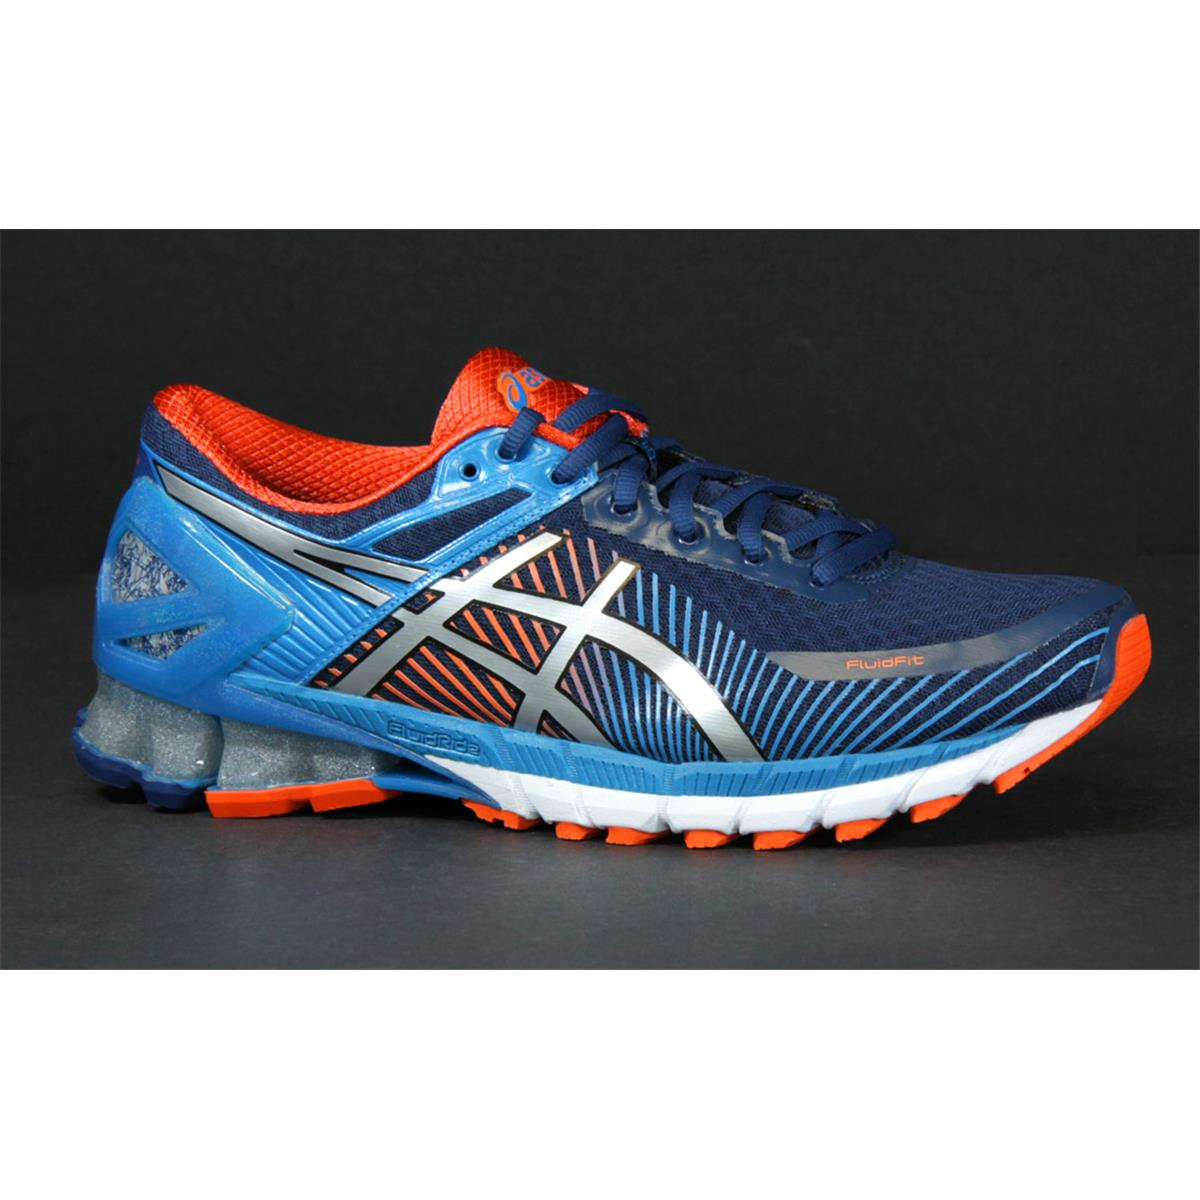 Asics Gel Kinsei 6 Mens Running Shoes (Blue-Silver)  4ec2e6b60e63